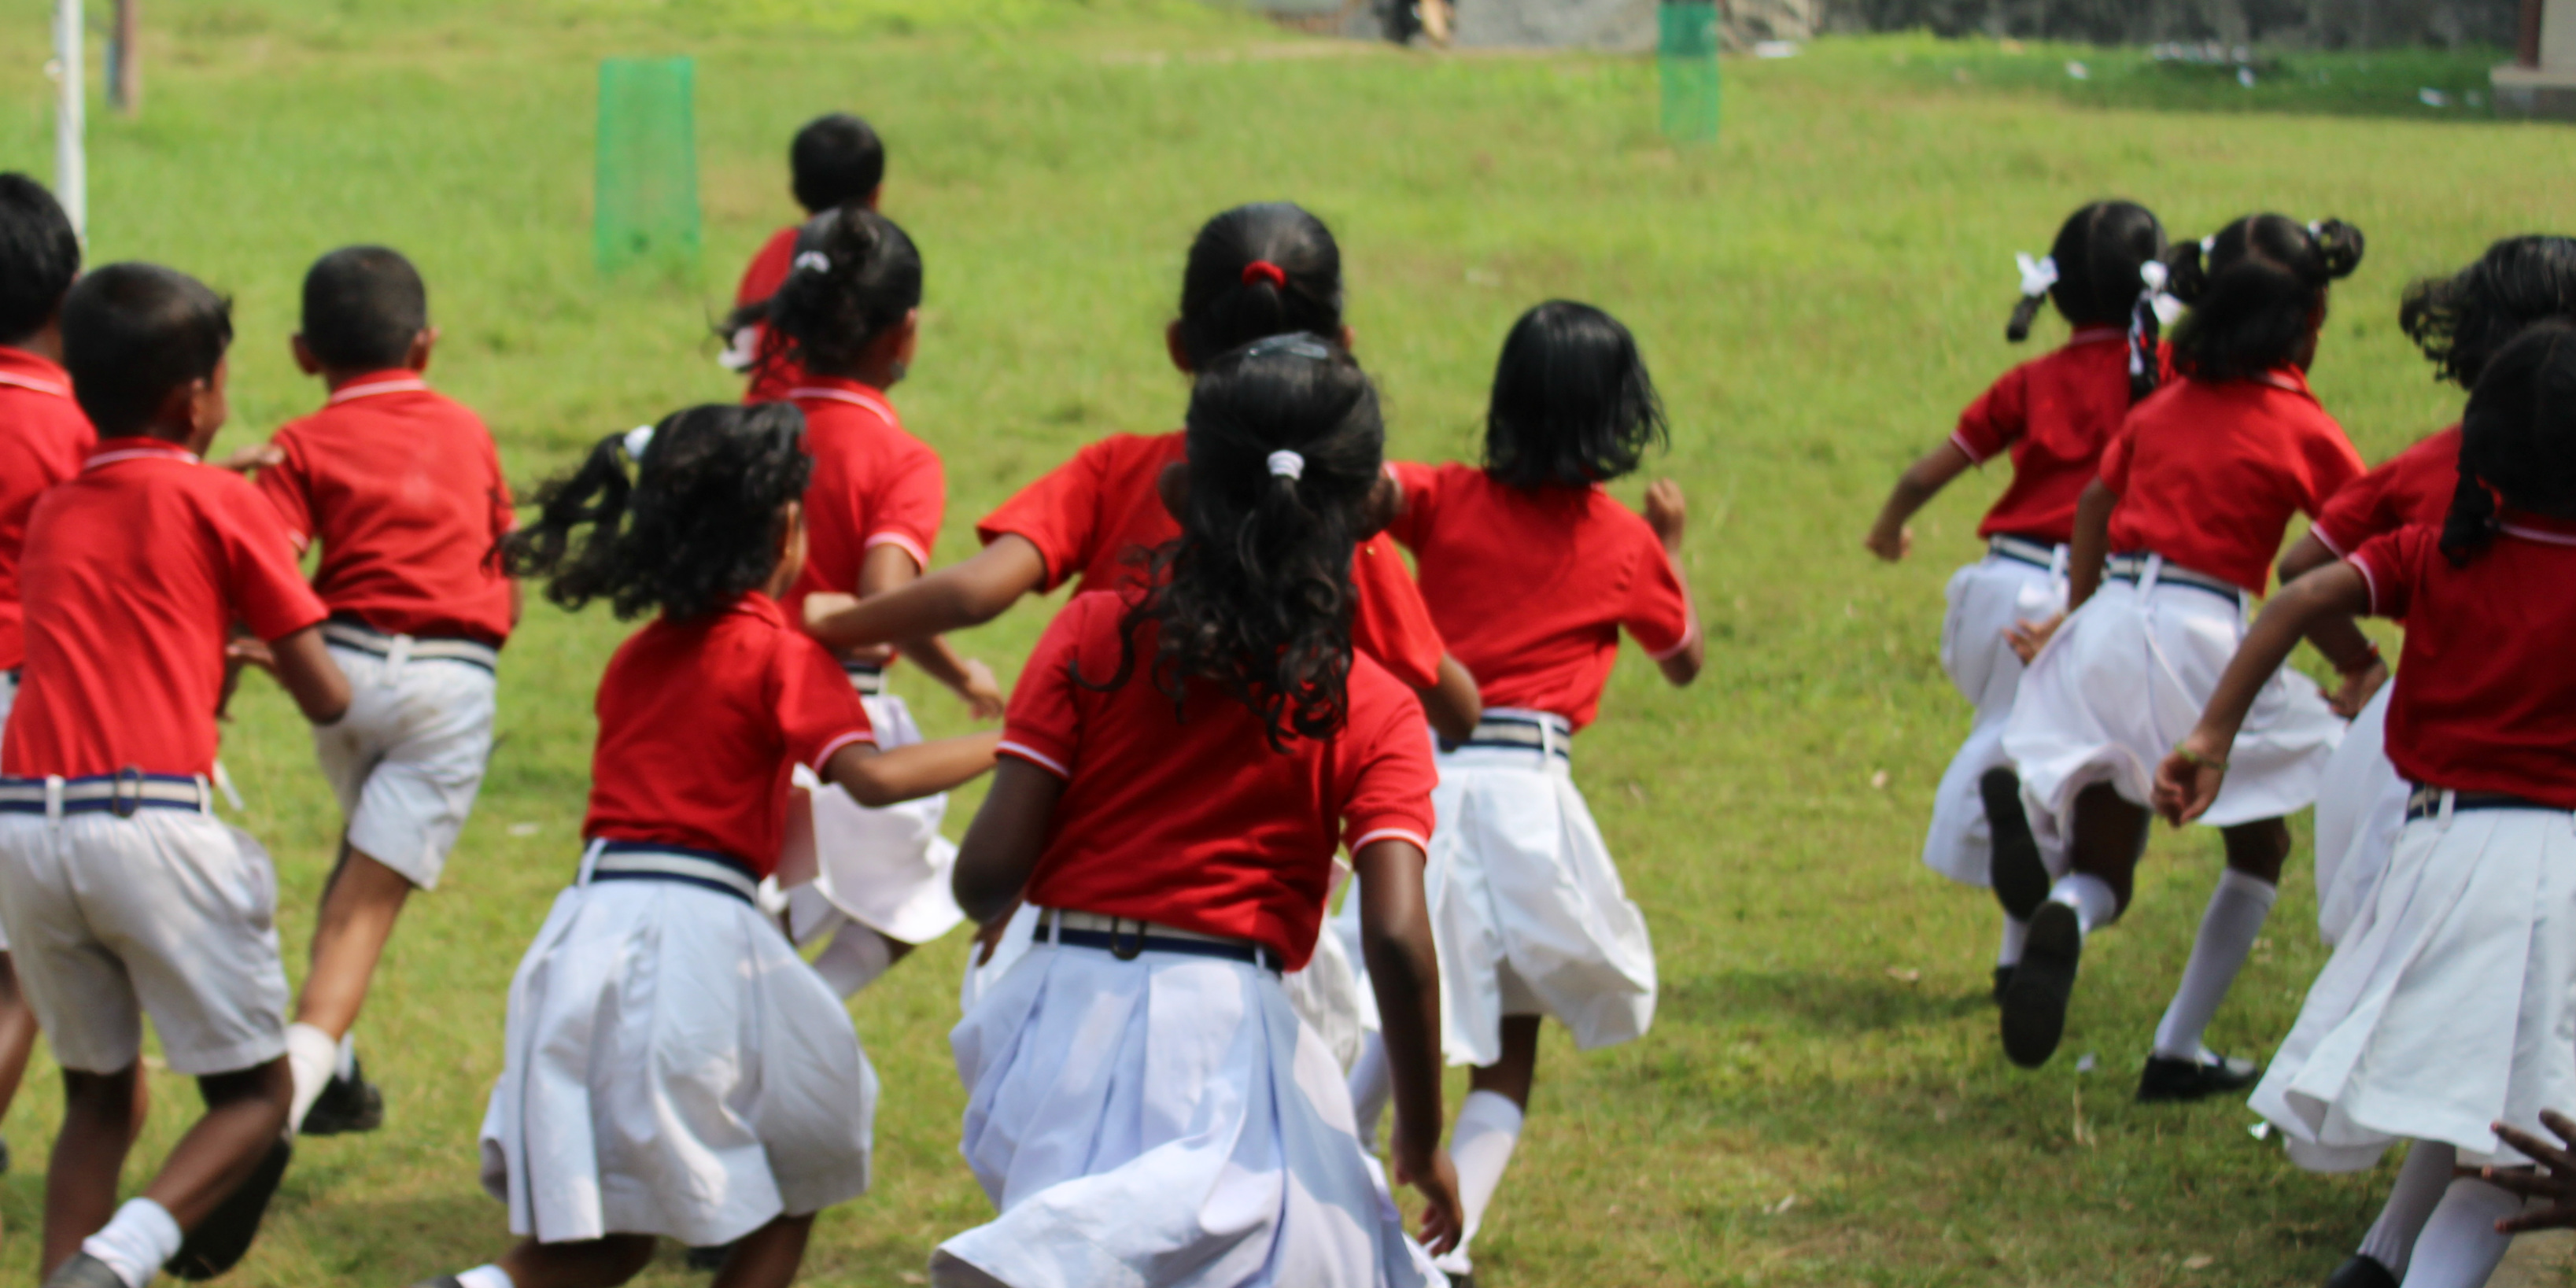 Quality education is having a positive impact on poverty and health issues experienced in India.